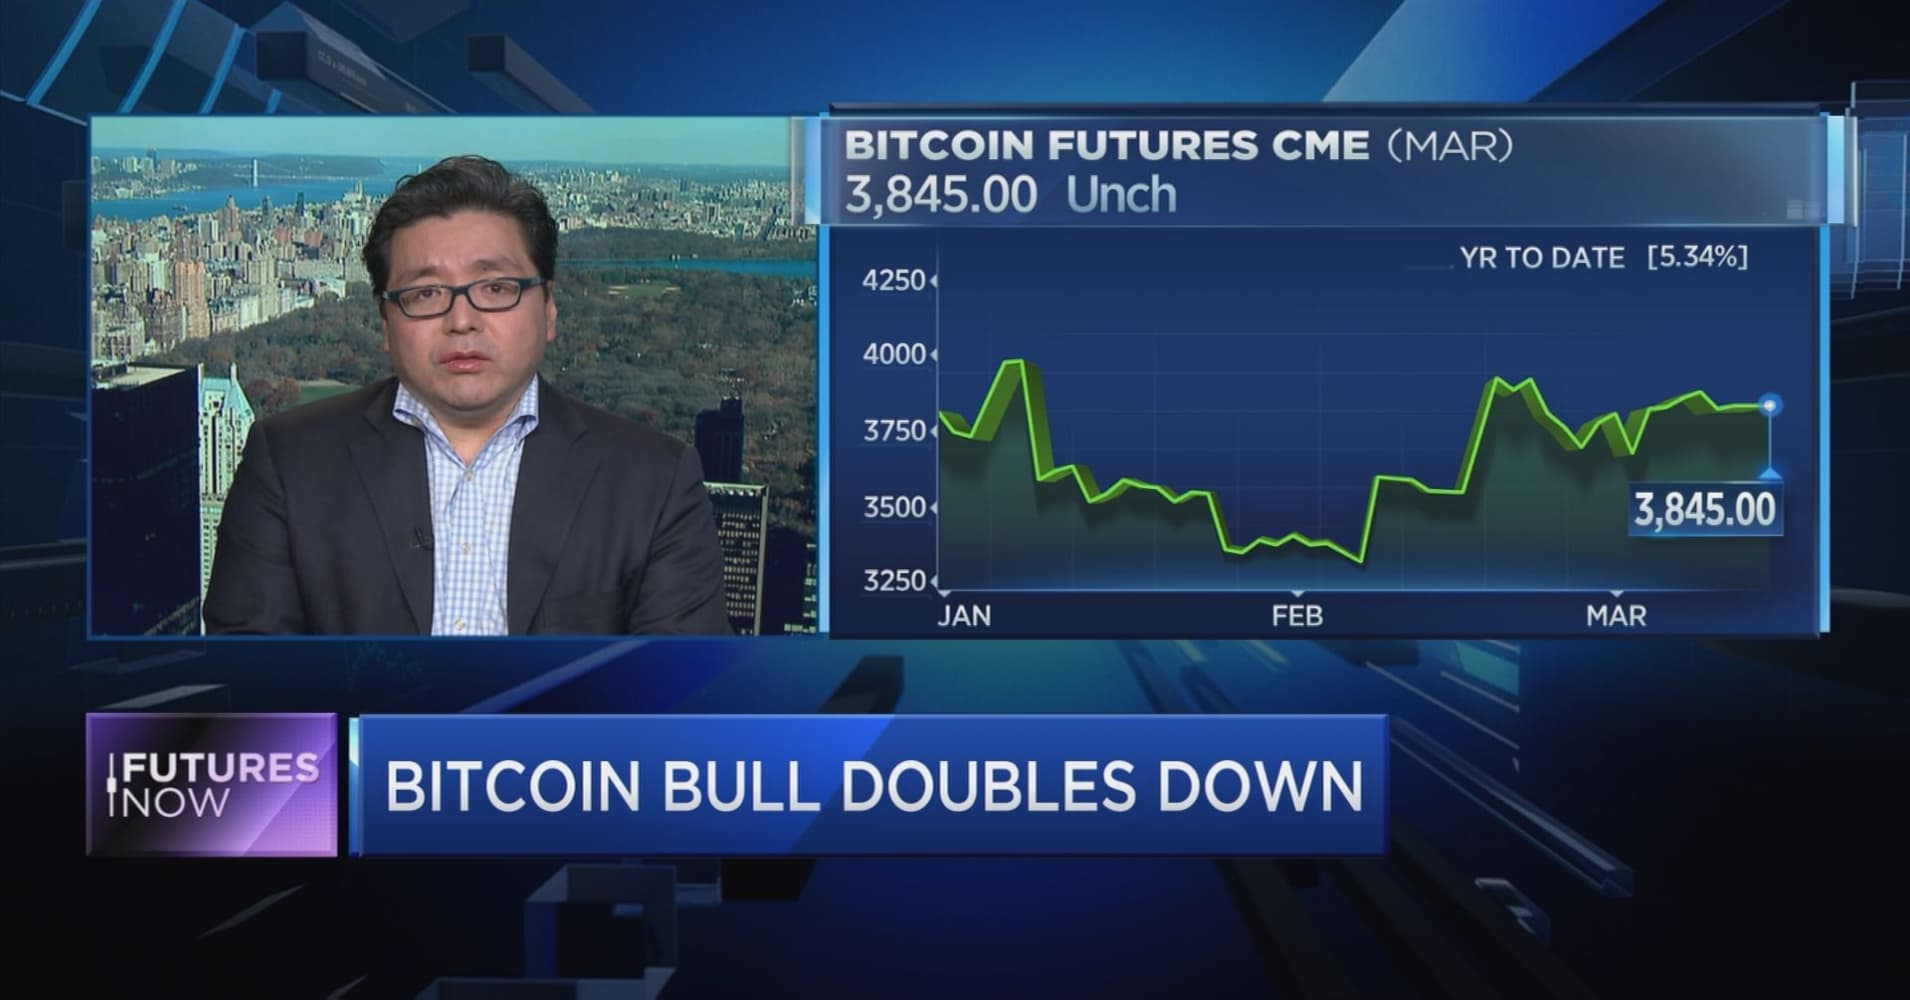 Another bitcoin bull market is coming in 2019, says Fundstrat's Tom Lee